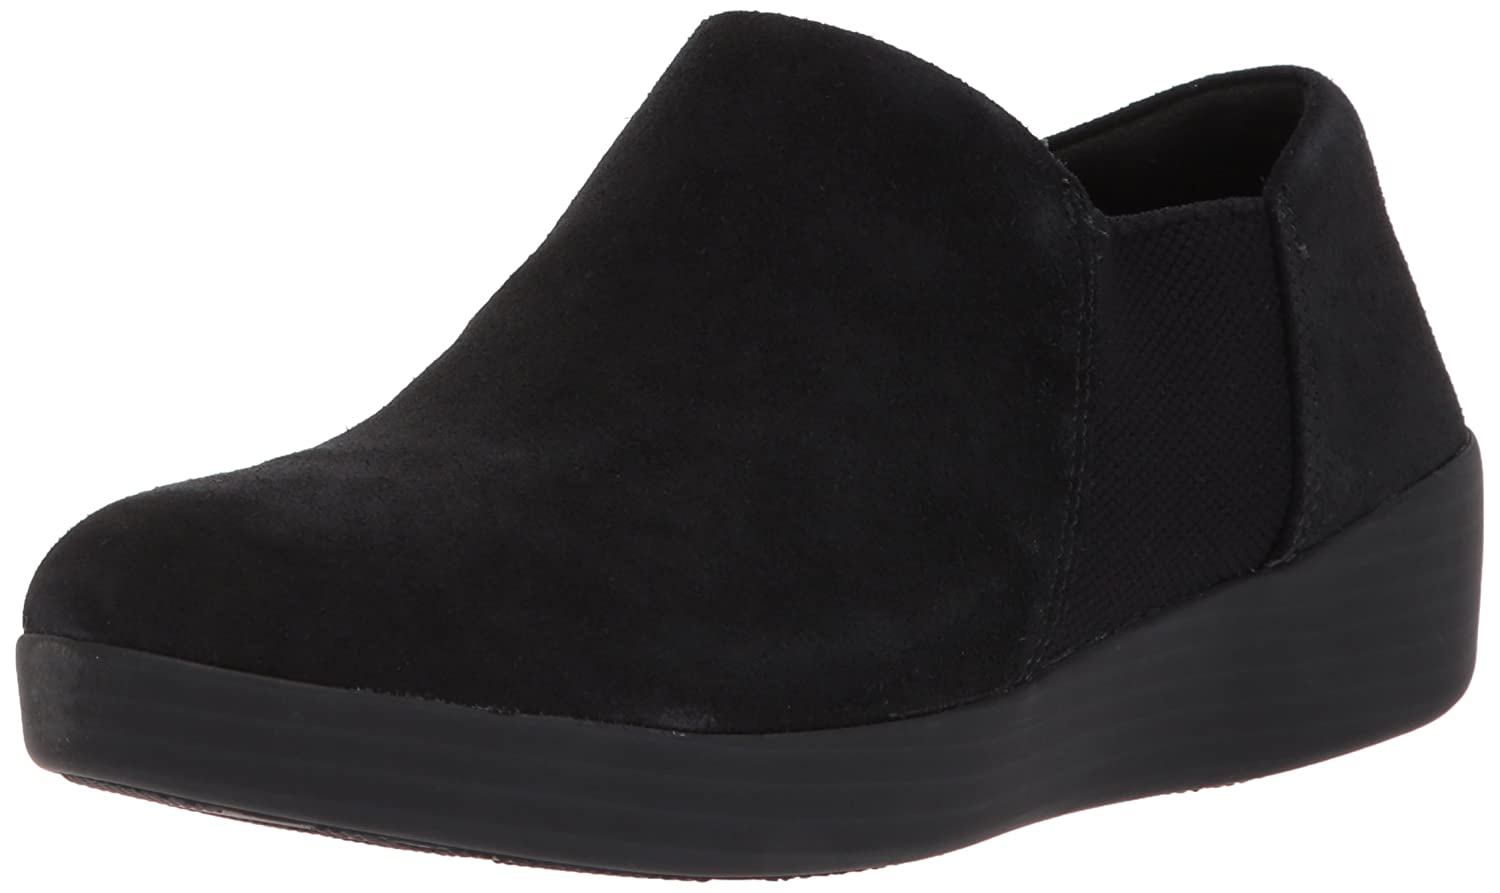 FitFlop Women's Elastic Panel Shoe Bootie Ankle Boot B073ZKHKWM 8.5 B(M) US|Black